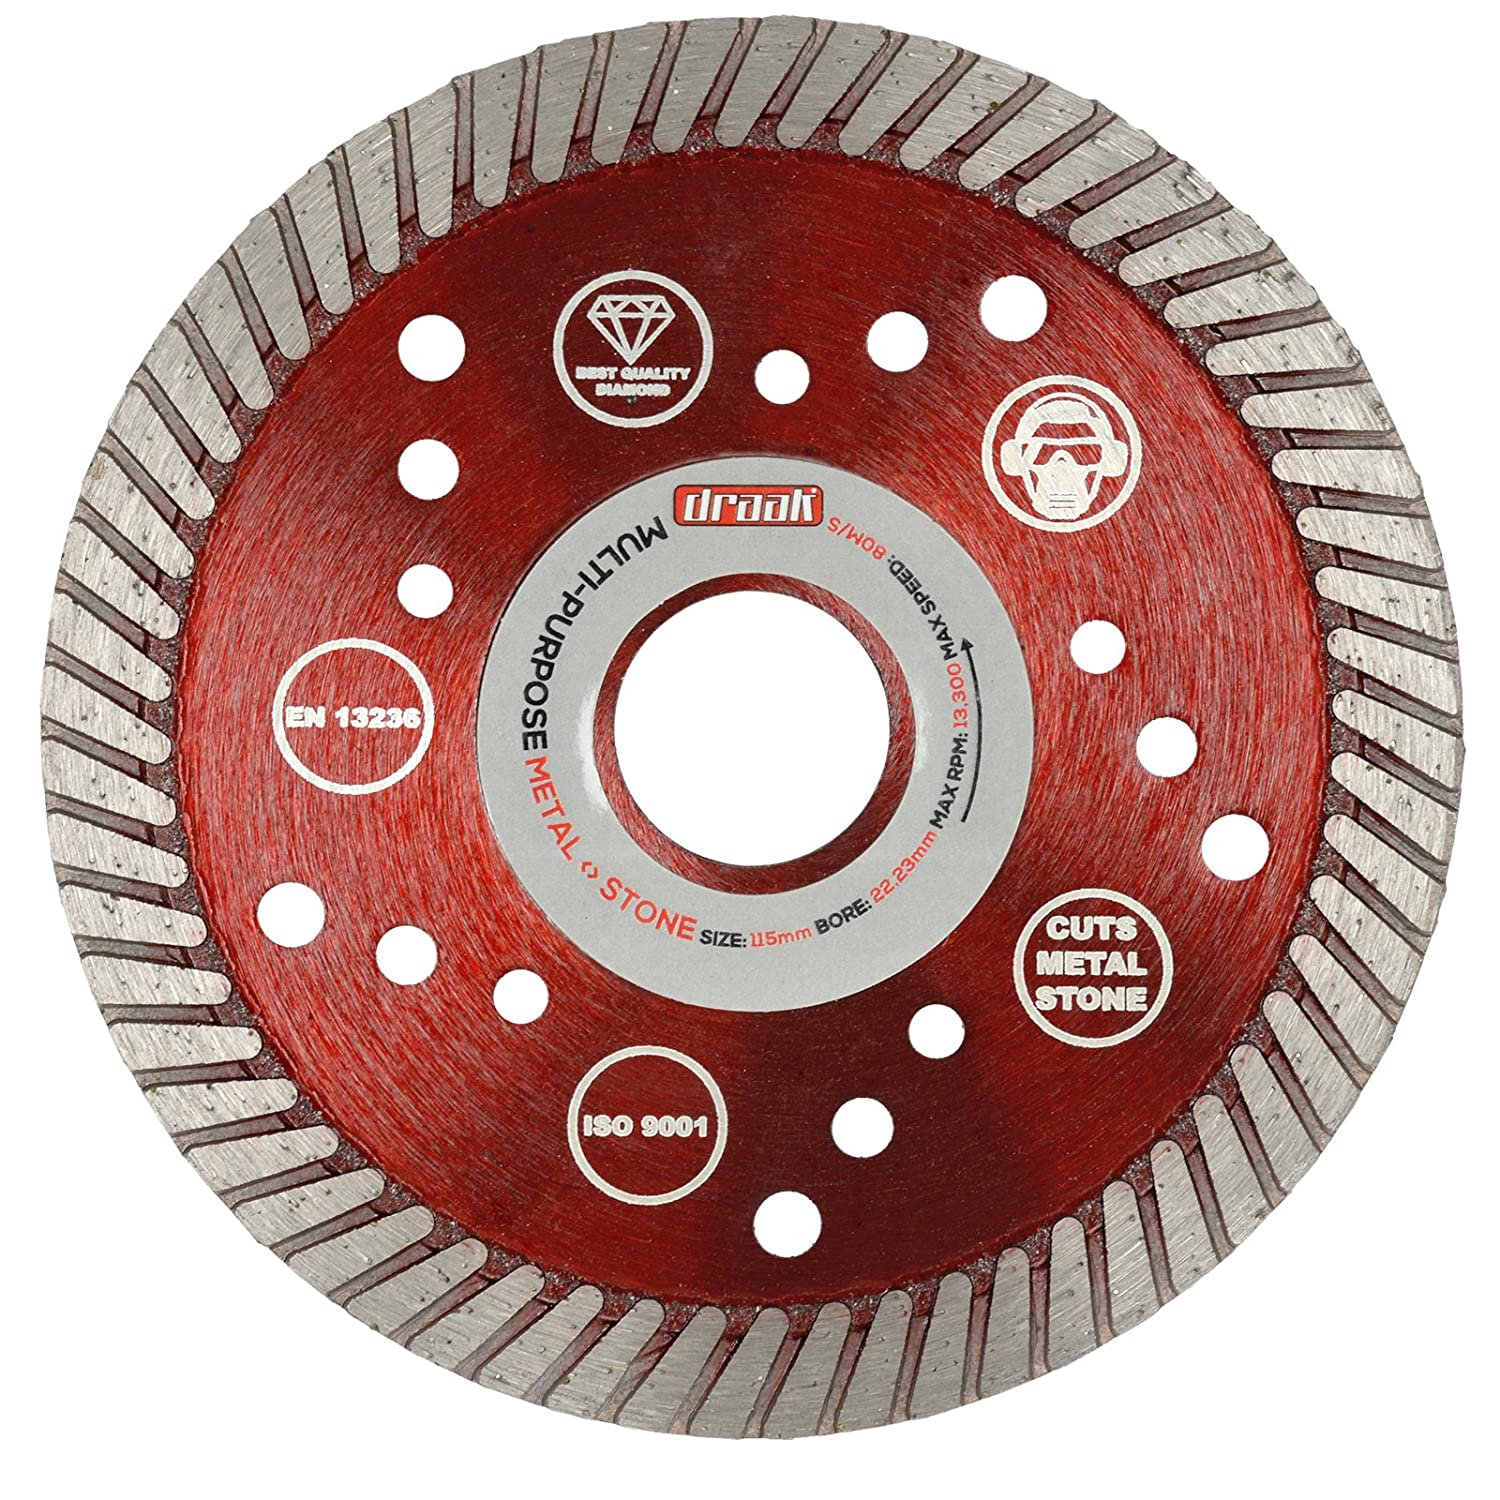 Diamond Cutting Disc 115mm 4.5' Angle Grinder Stone, Concrete, Metal & Steel DRAAK